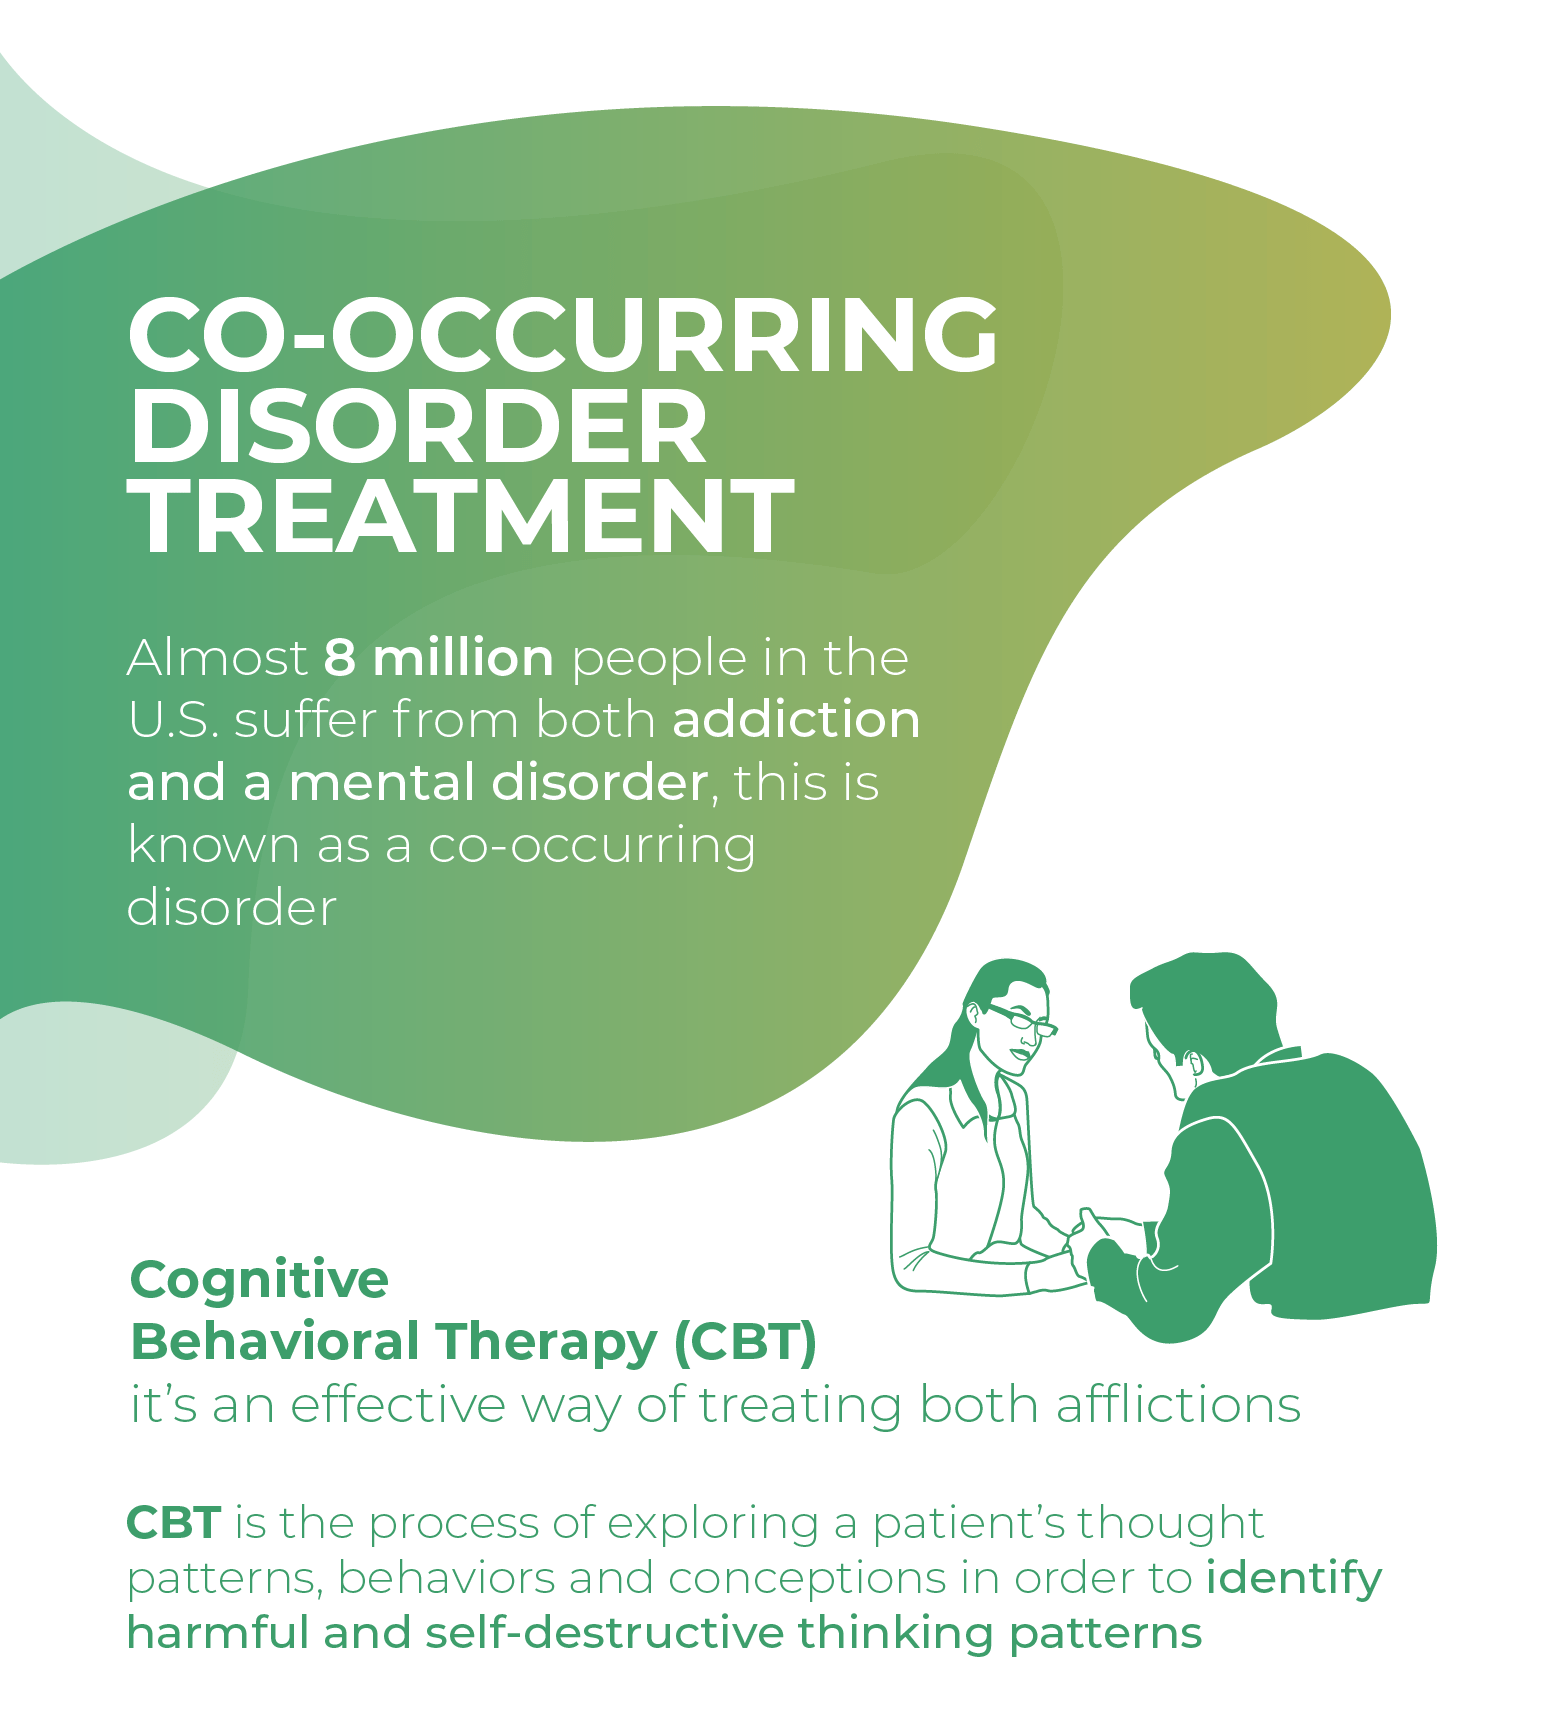 Co-occurring disorder treatment